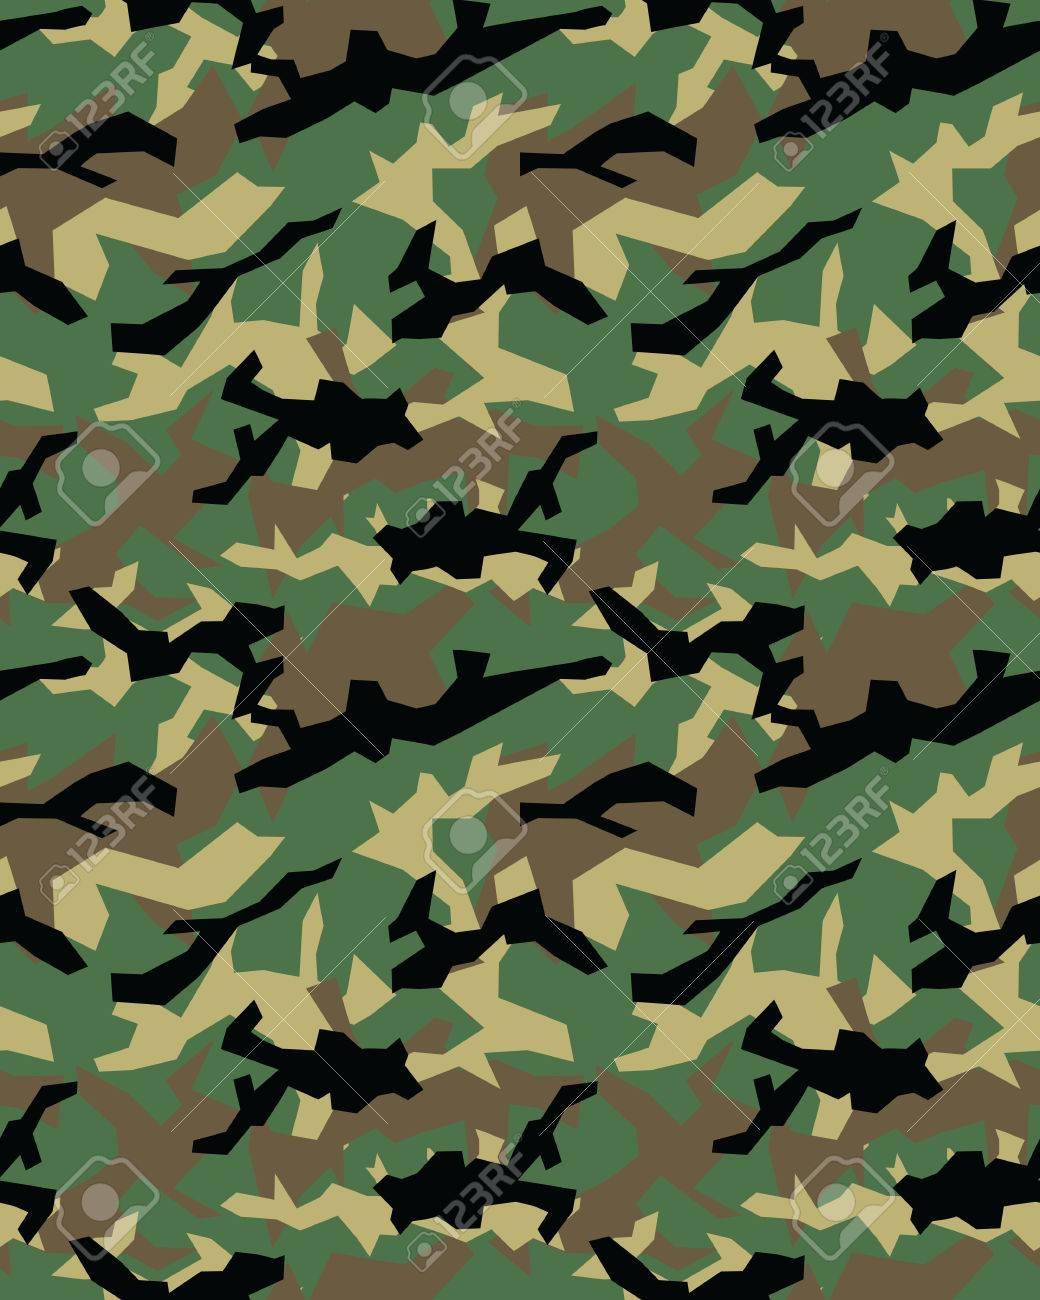 Fashionable camouflage pattern, military print .Seamless illustration, wallpaper Stock Vector - 69223683